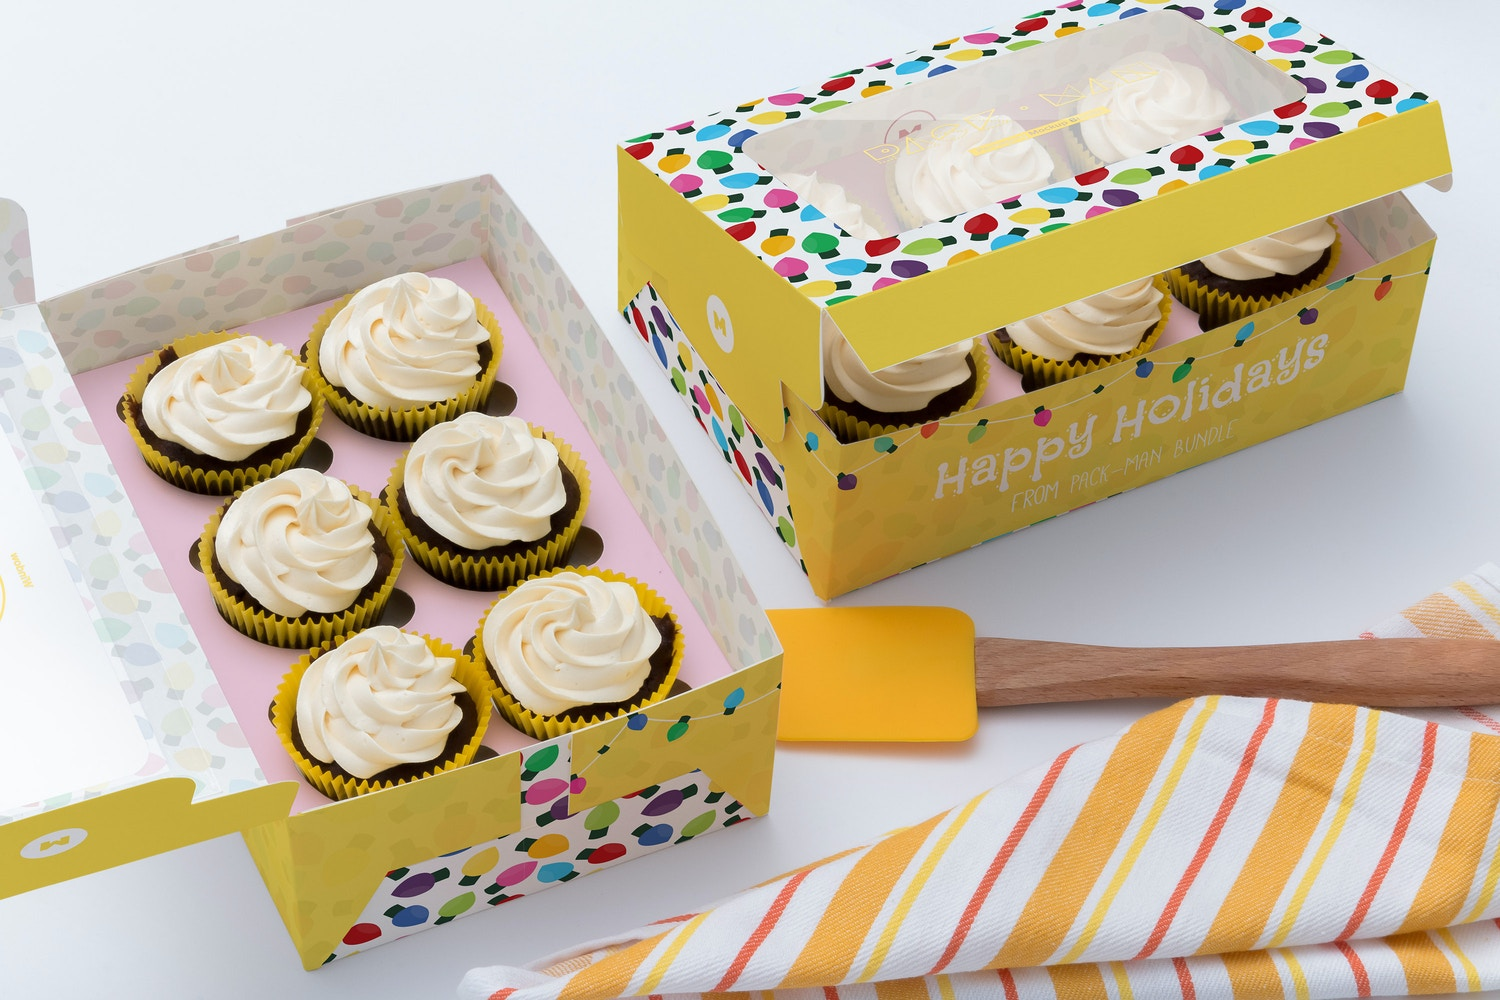 Six Cupcake Box Mockup 03 by Ktyellow  on Original Mockups